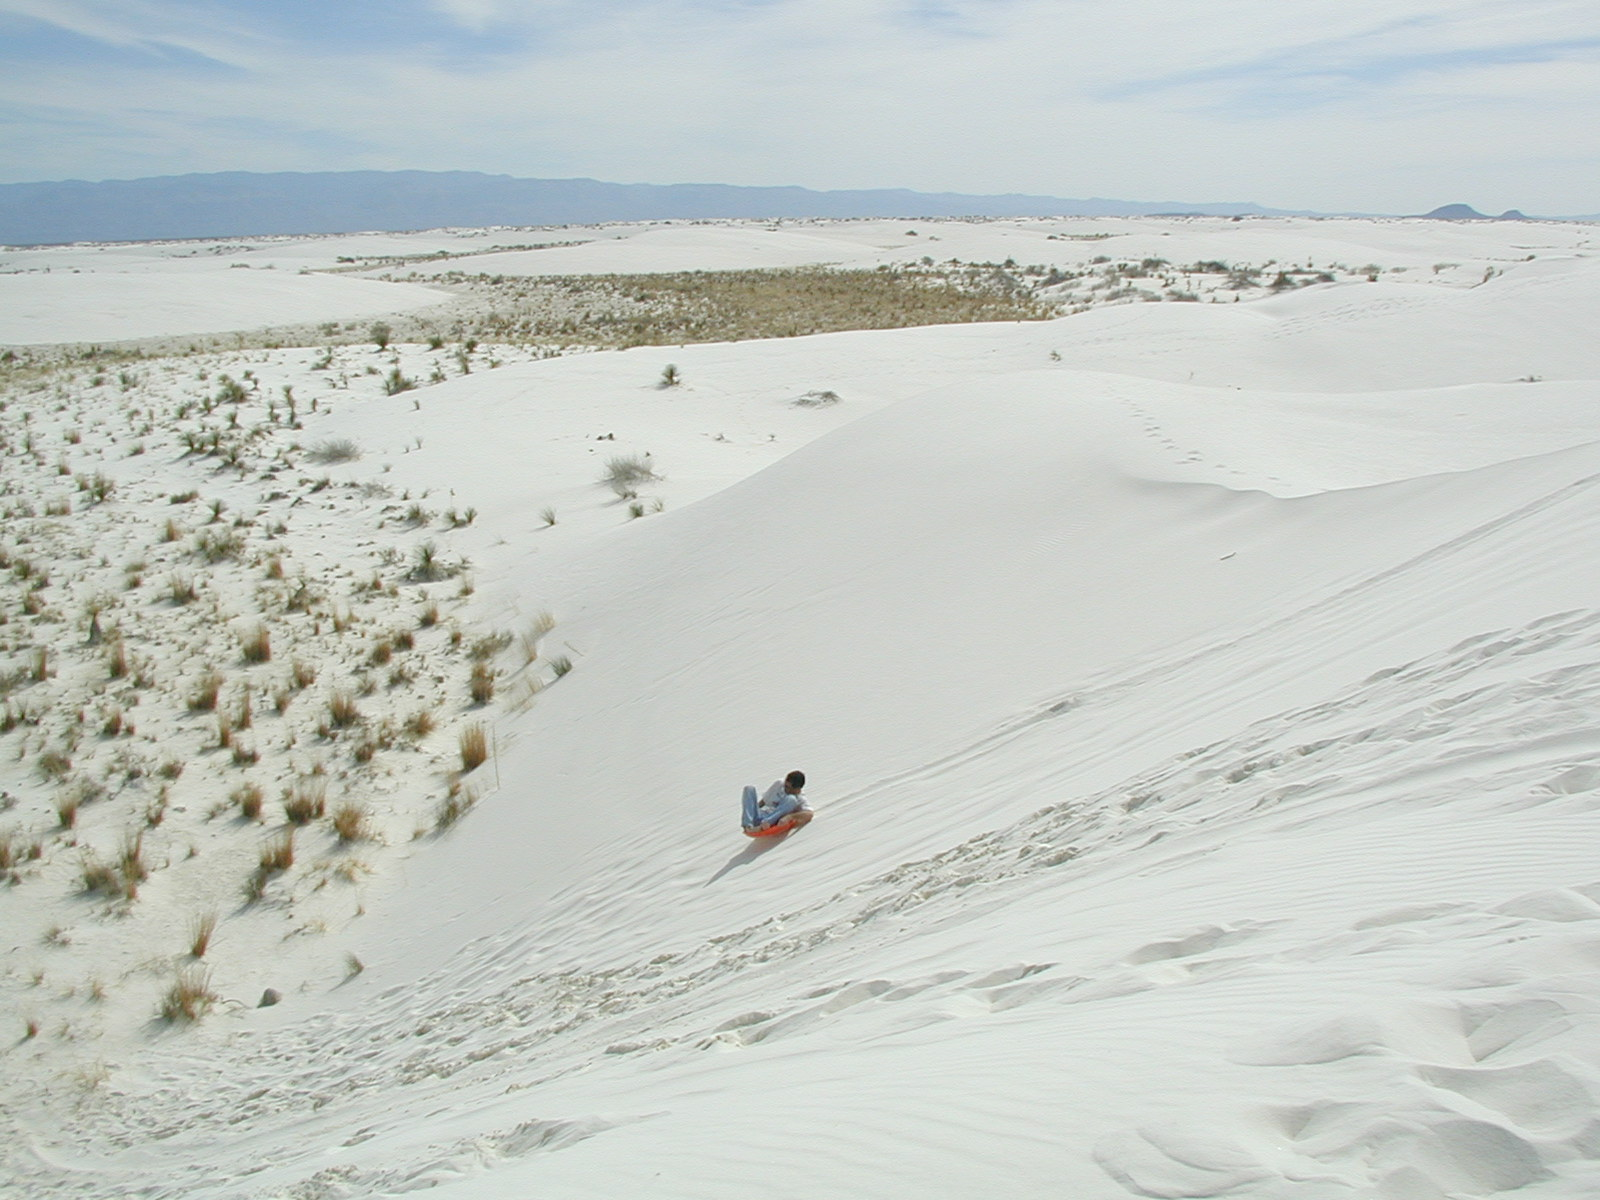 Andy Sledding the Dunes